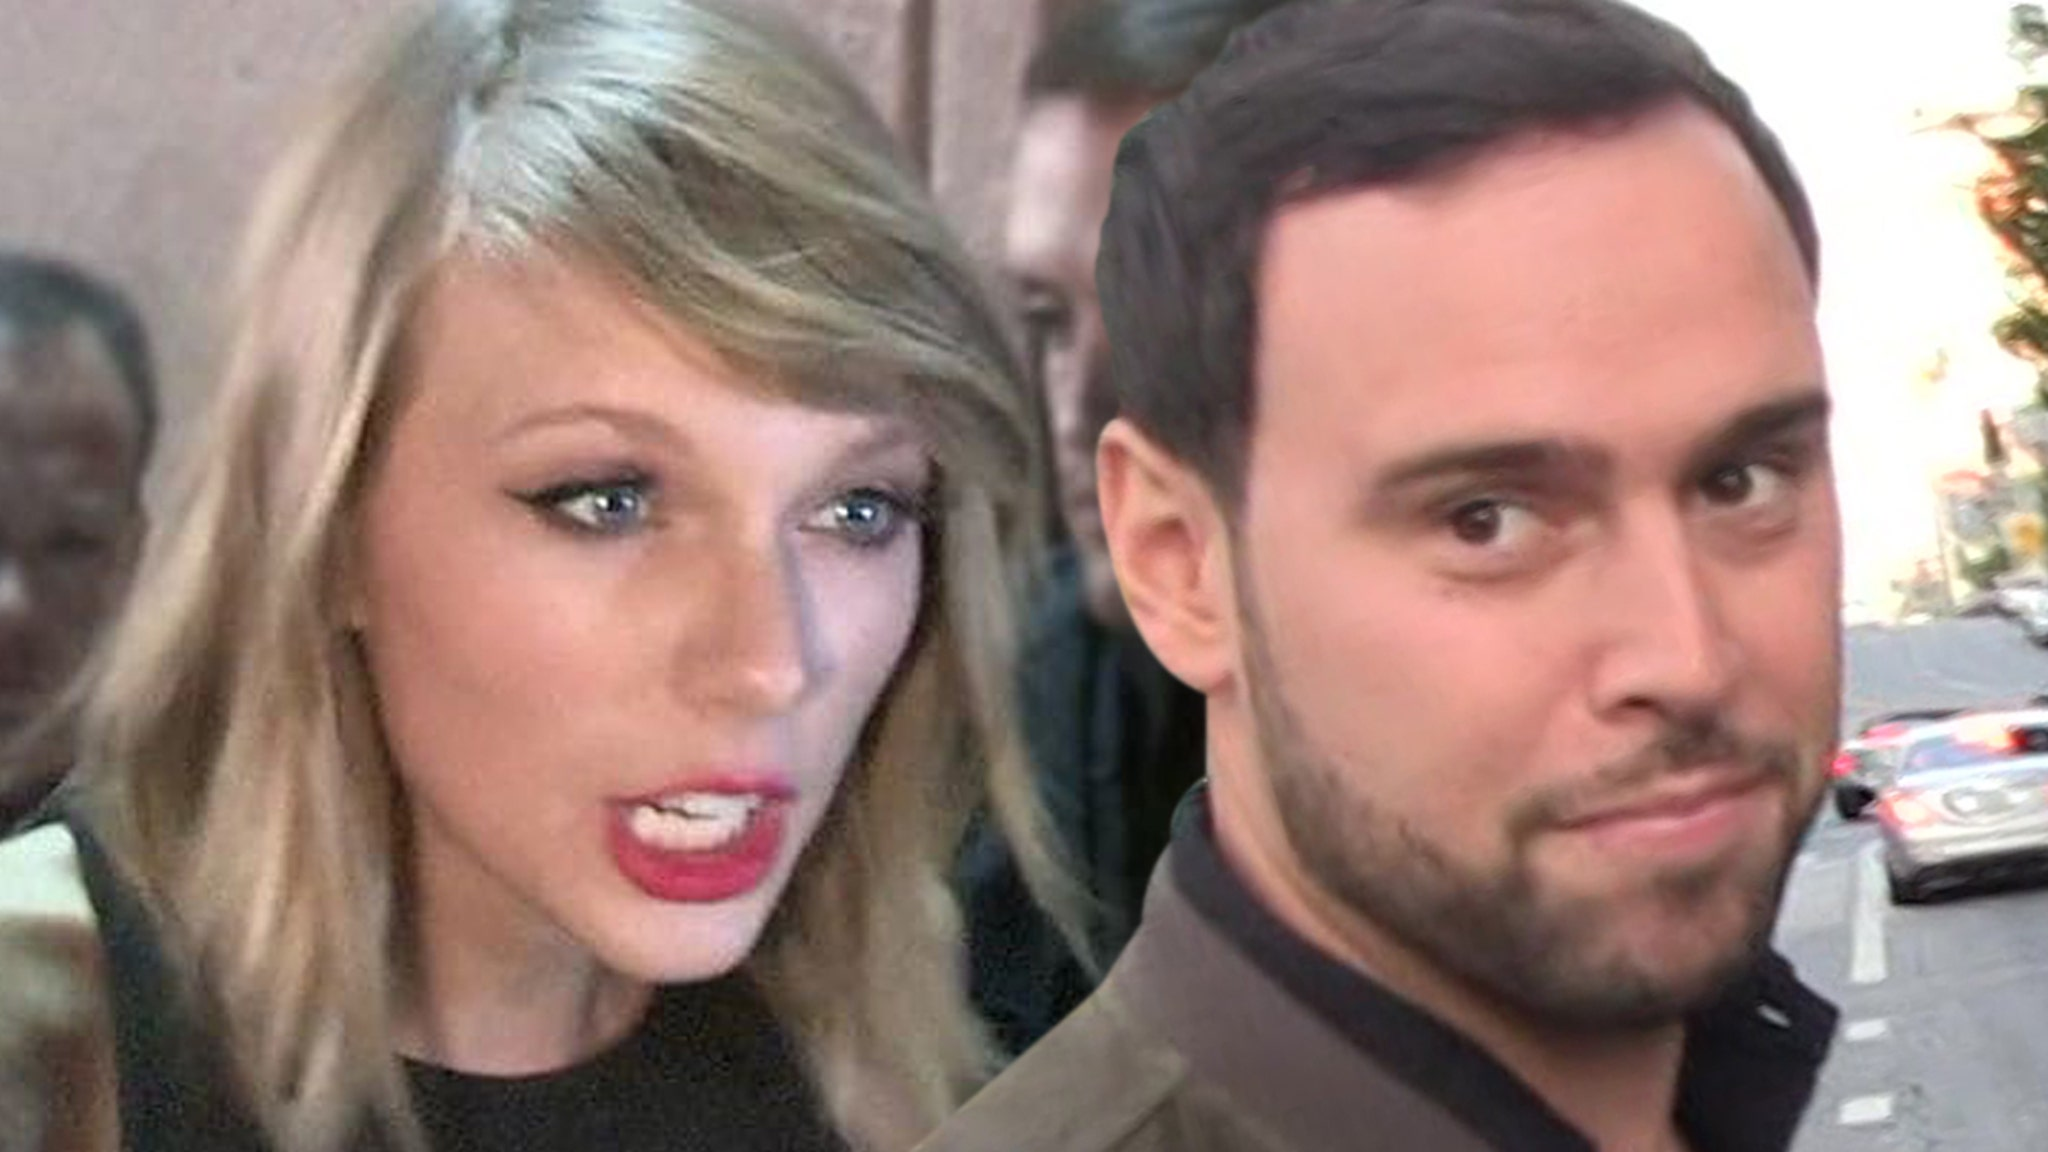 Taylor Swift's Old Music Flourishing After Scooter Braun Feud - TMZ thumbnail